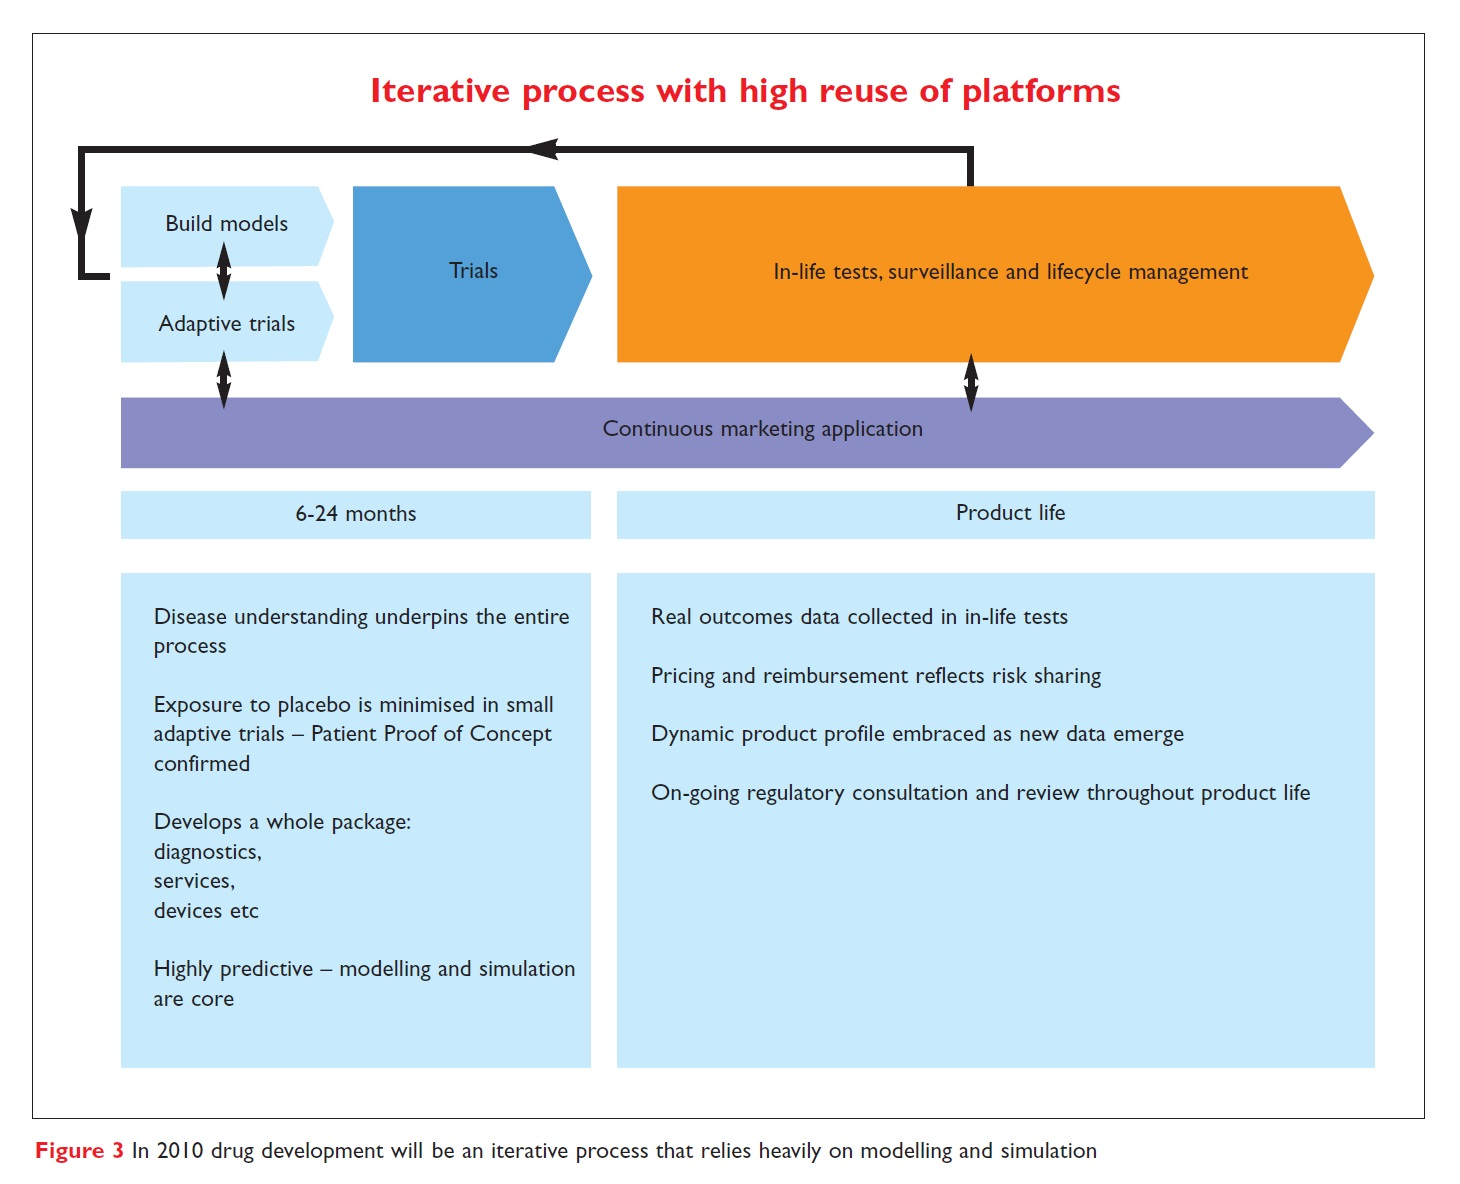 Figure 3 In 2010 drug development will be an iterative process that relies heavily on modelling and simulation